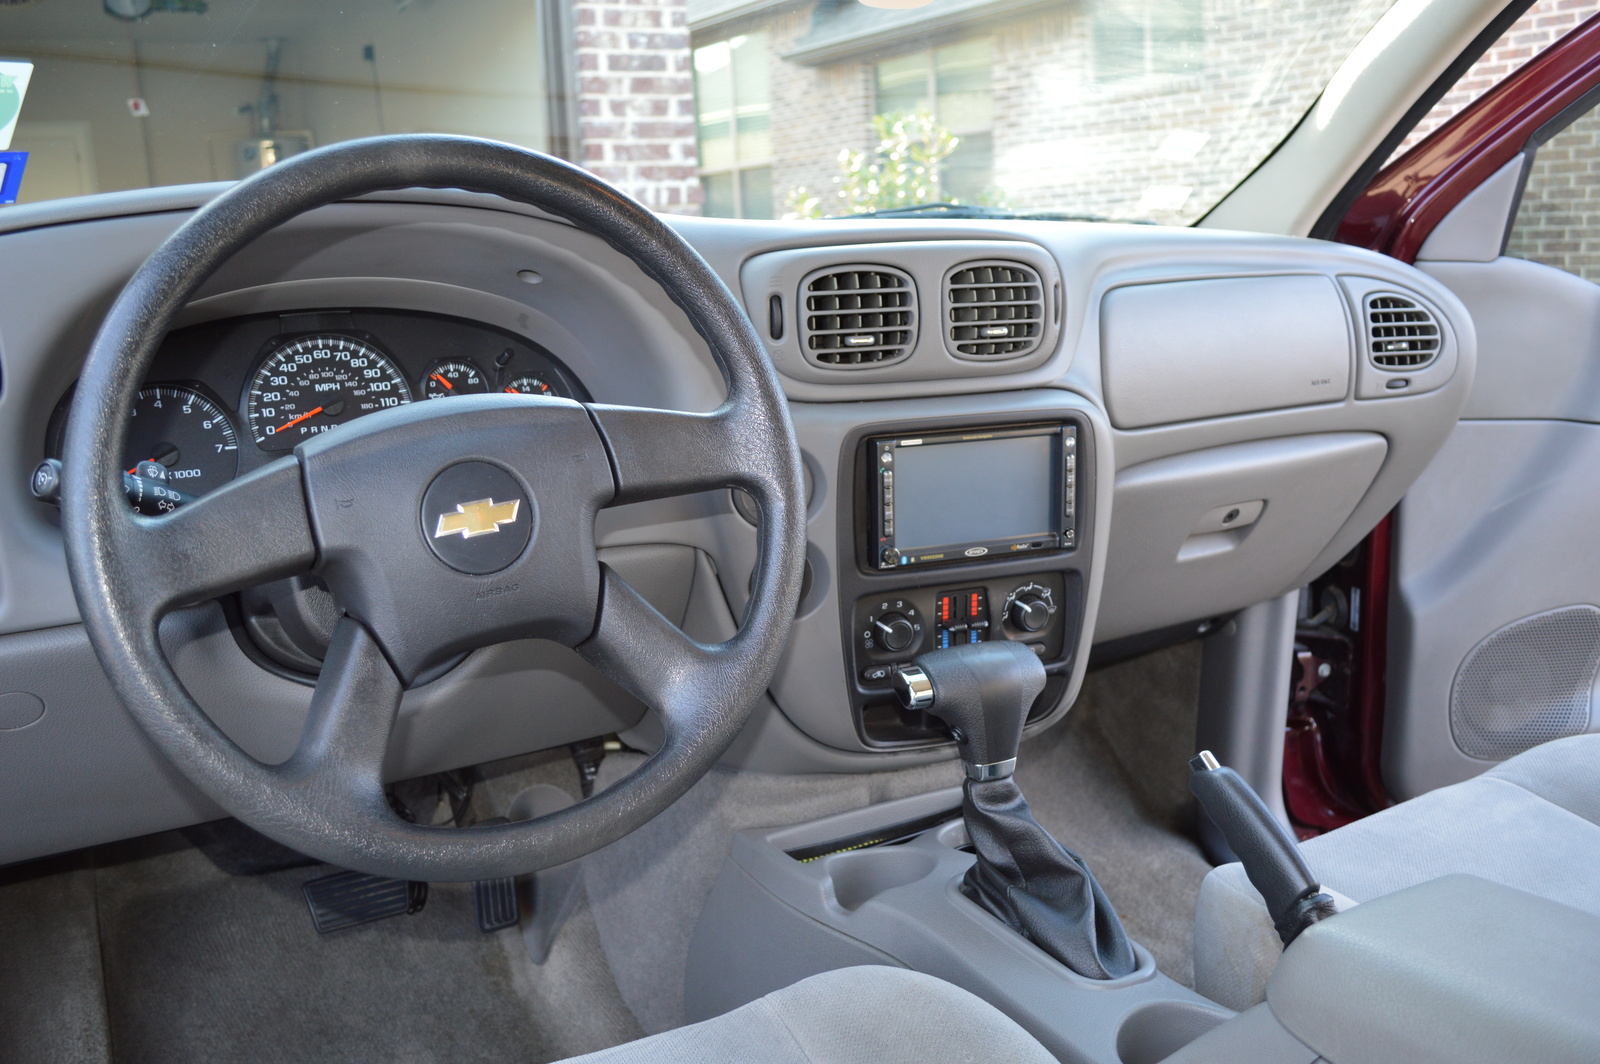 2007 trailblazer interior pictures